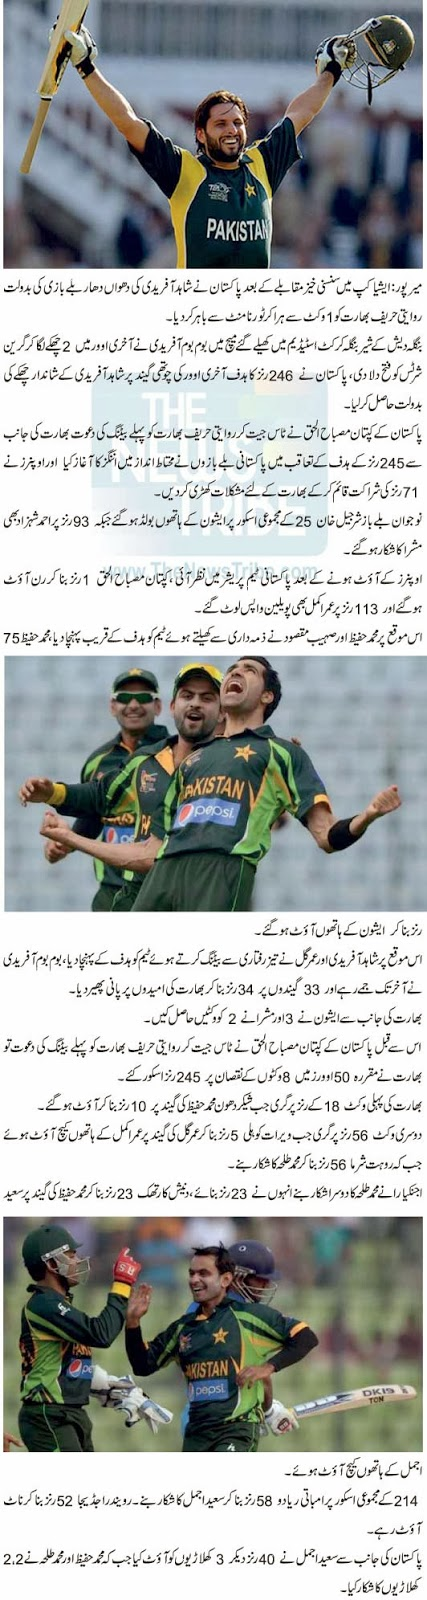 ASia Cup News, Asia Cup, News, sports news, Cricket News, Cricket, Afridi Best, Shahid Afridi, Shahid Afridi Against India, Pak vs India,